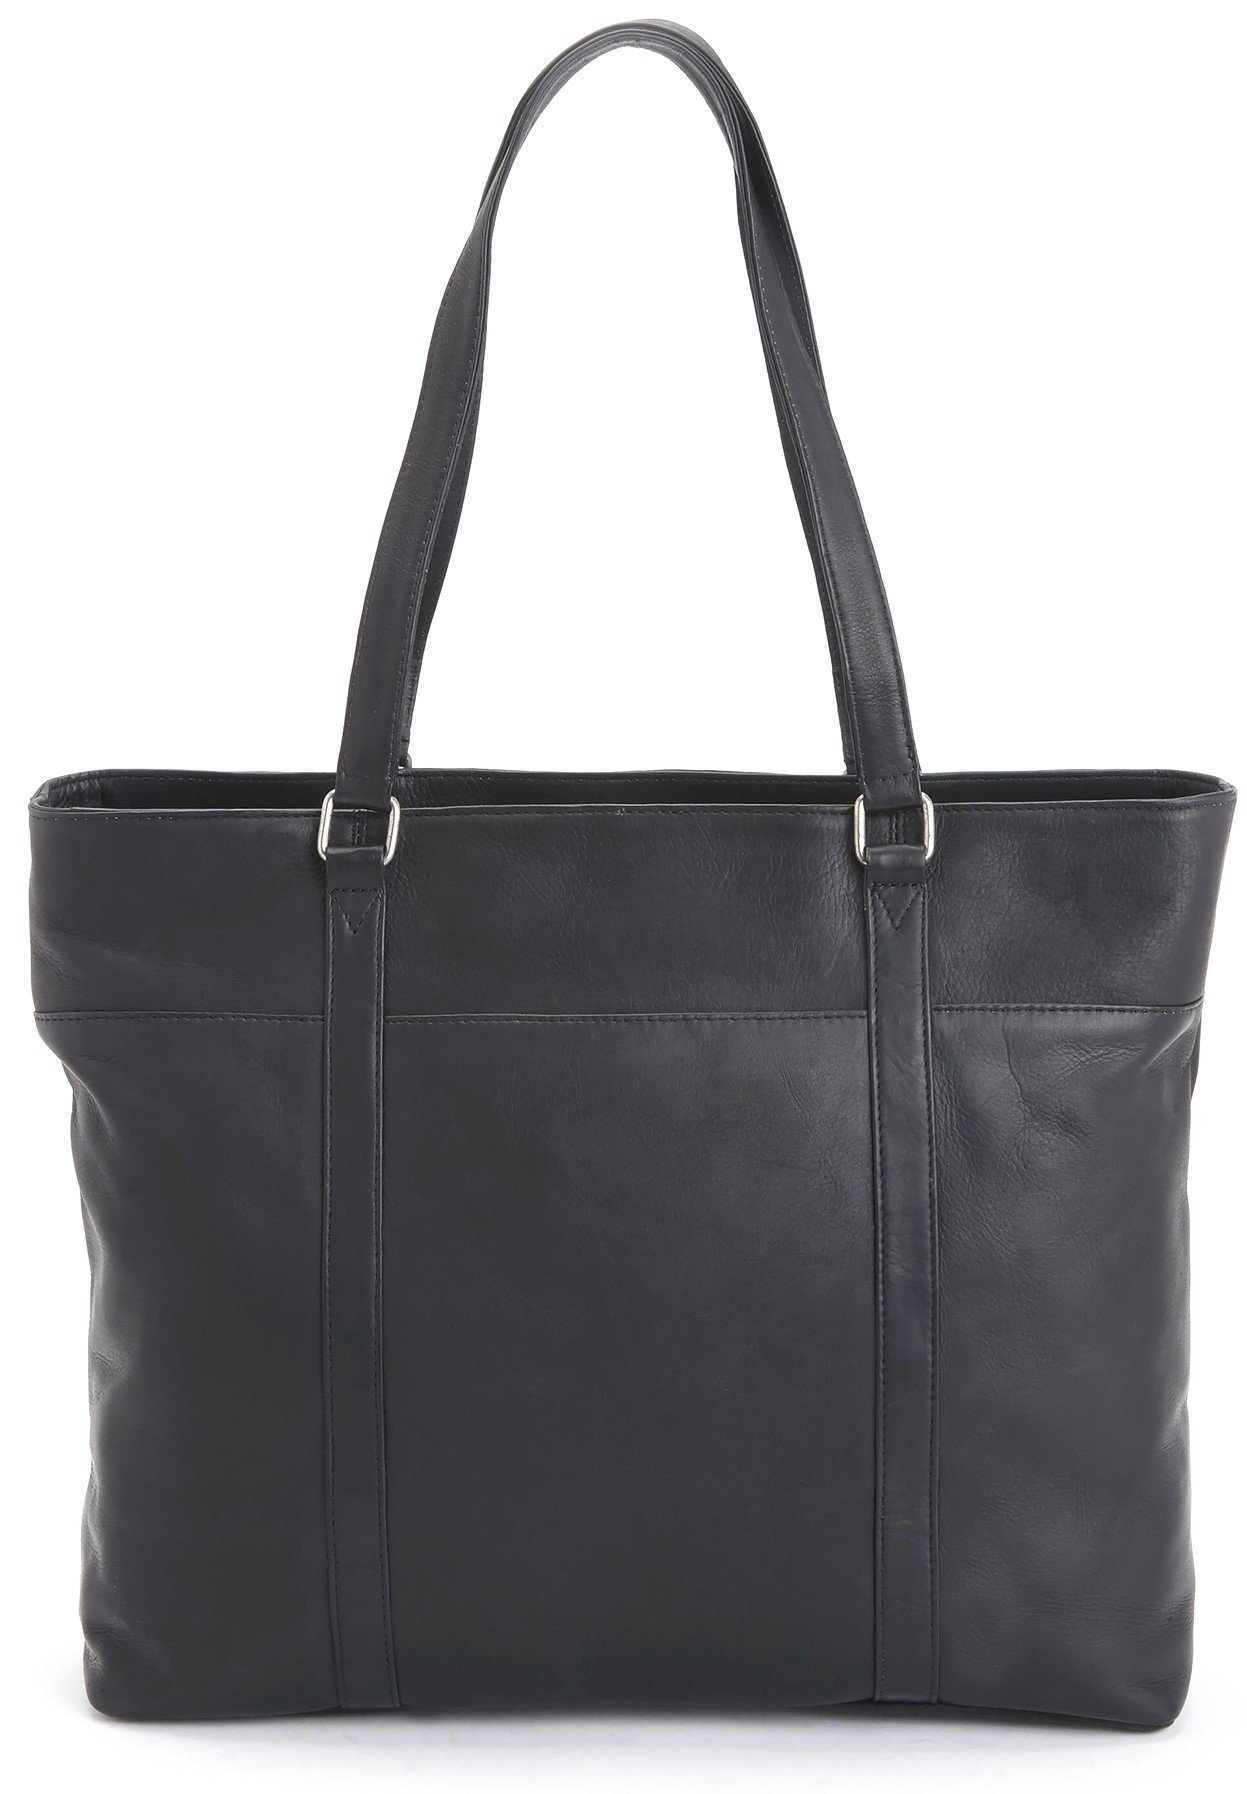 ROYCE Luxury Carryall Women's Tote Bag Handcrafted in Colombian Genuine Leather - Black